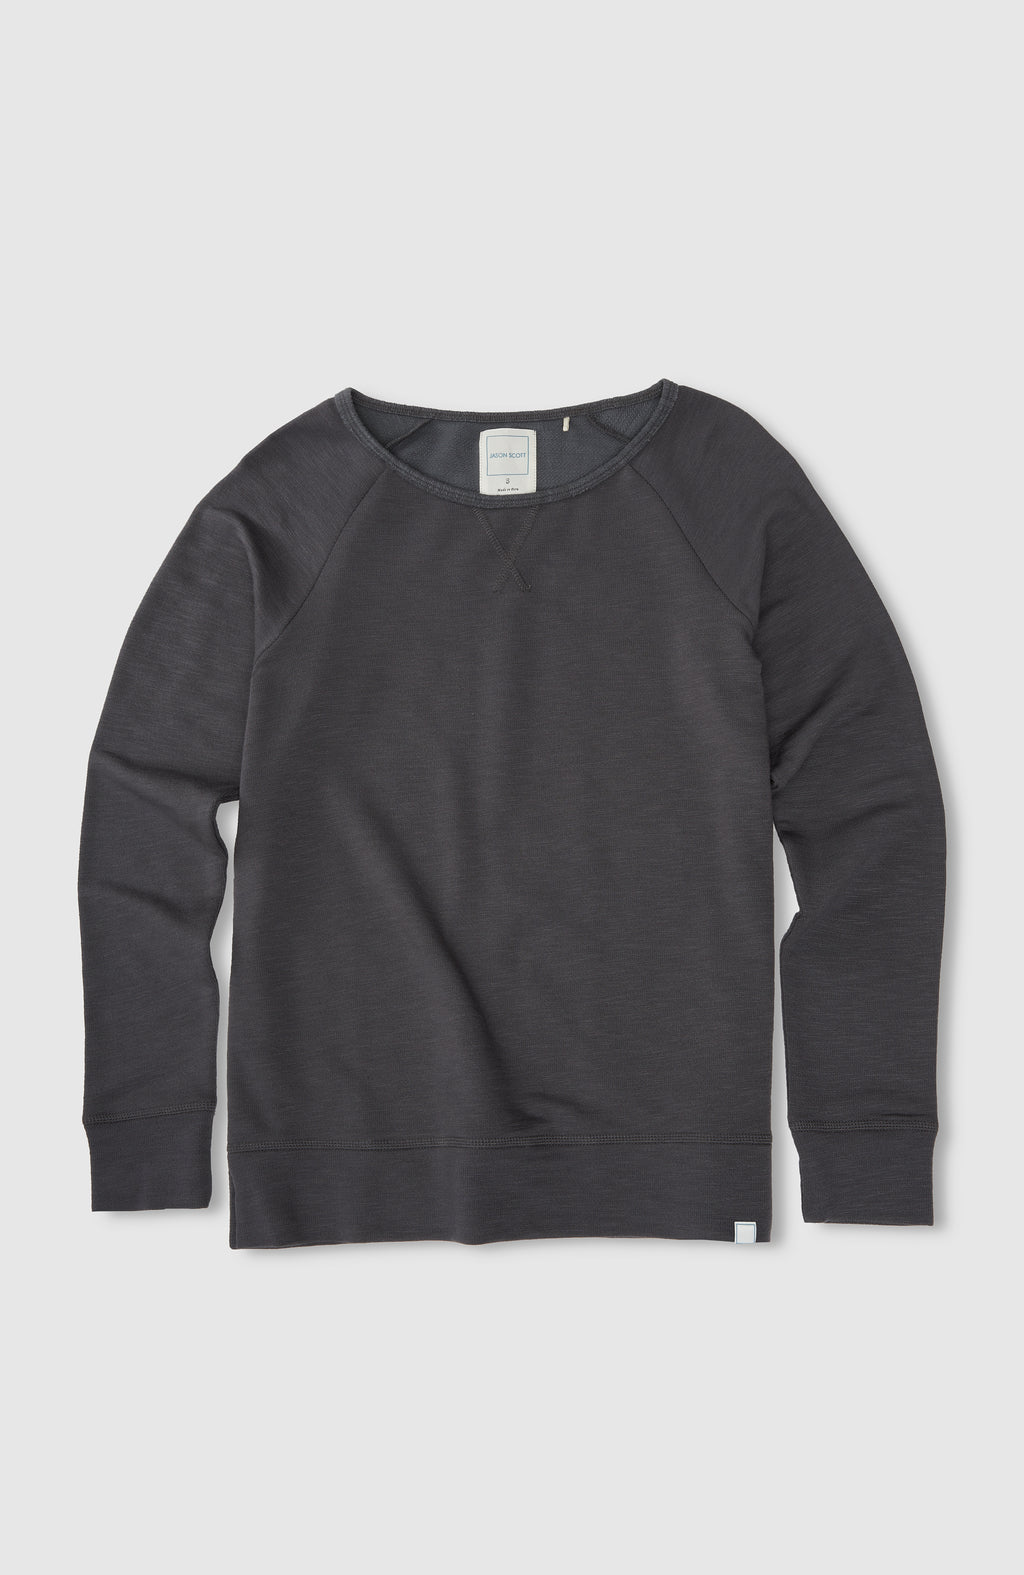 Wide Neck Sweatshirt - Charcoal